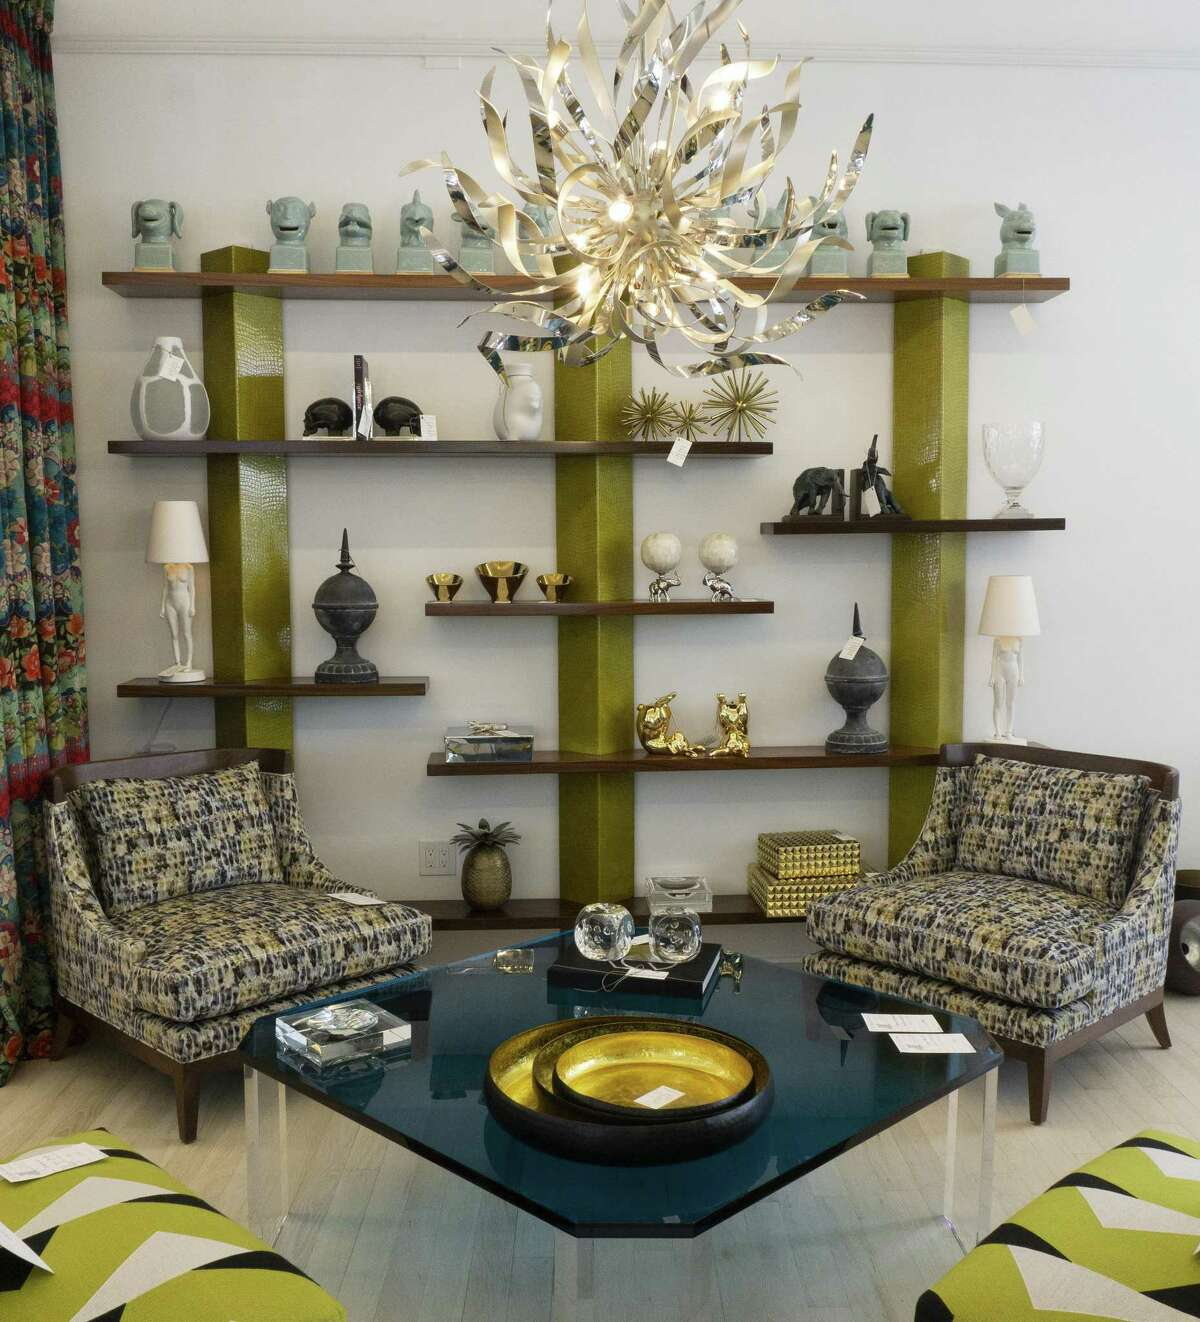 The Tailored Home in Westport has opened a second shop in Greenwich.